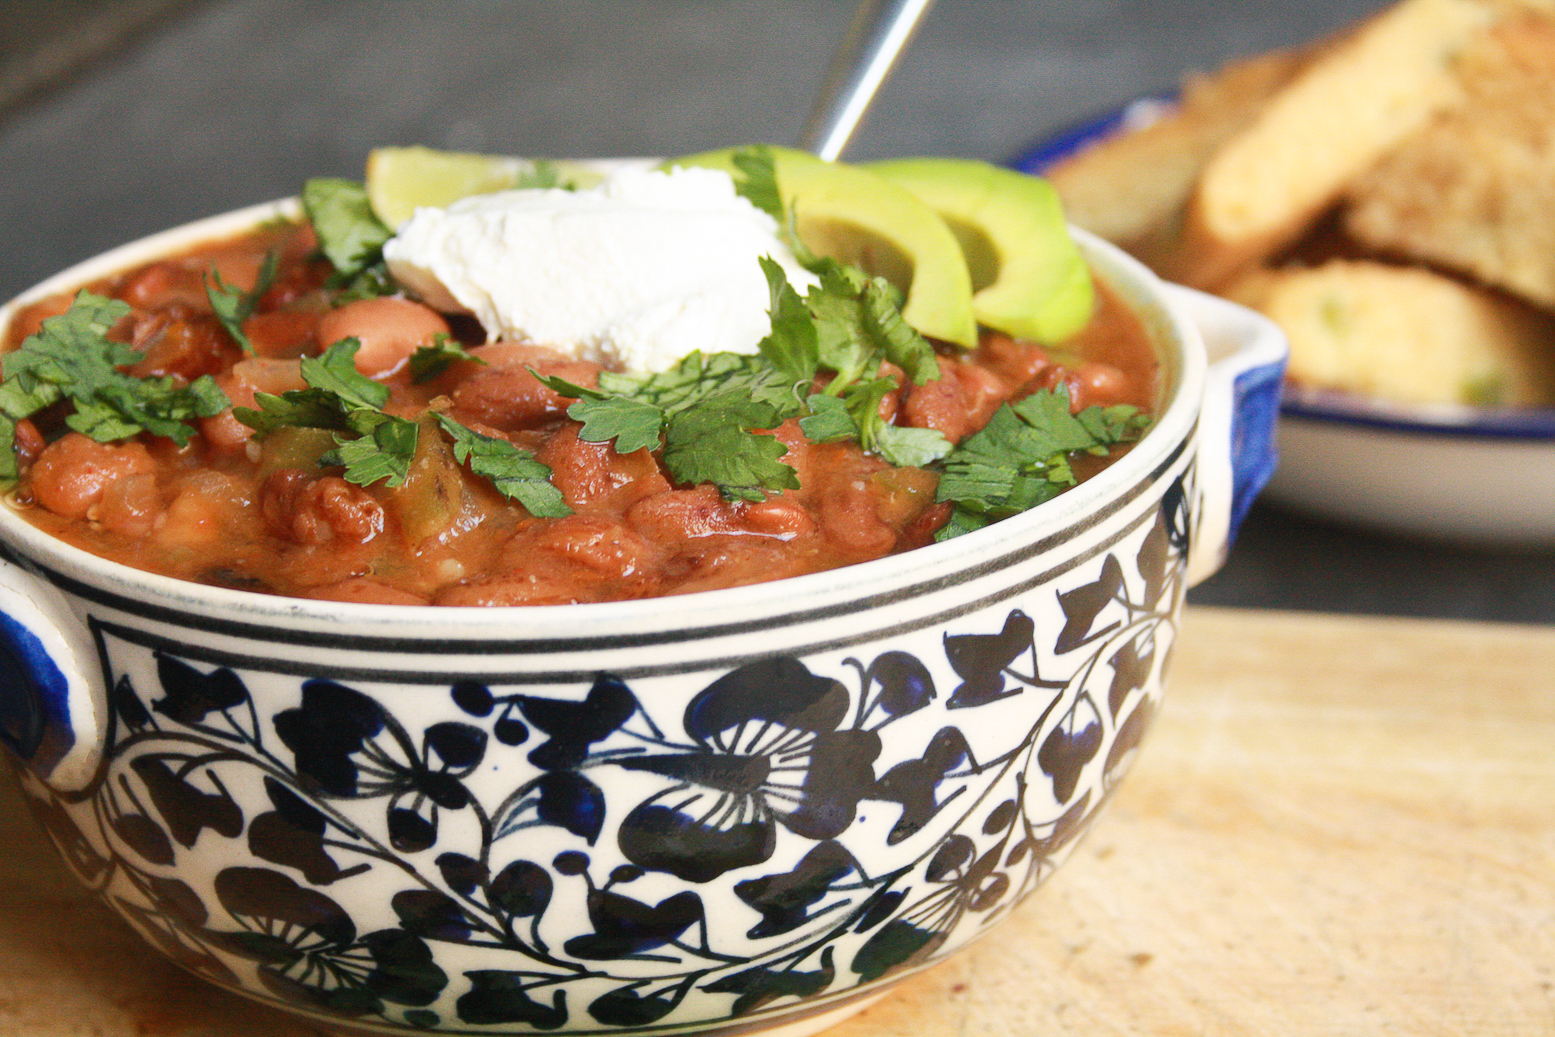 A hearty vegetarian chili with beans and veggies plus eggless, tender cornbread to go with it. Easily made vegan too!